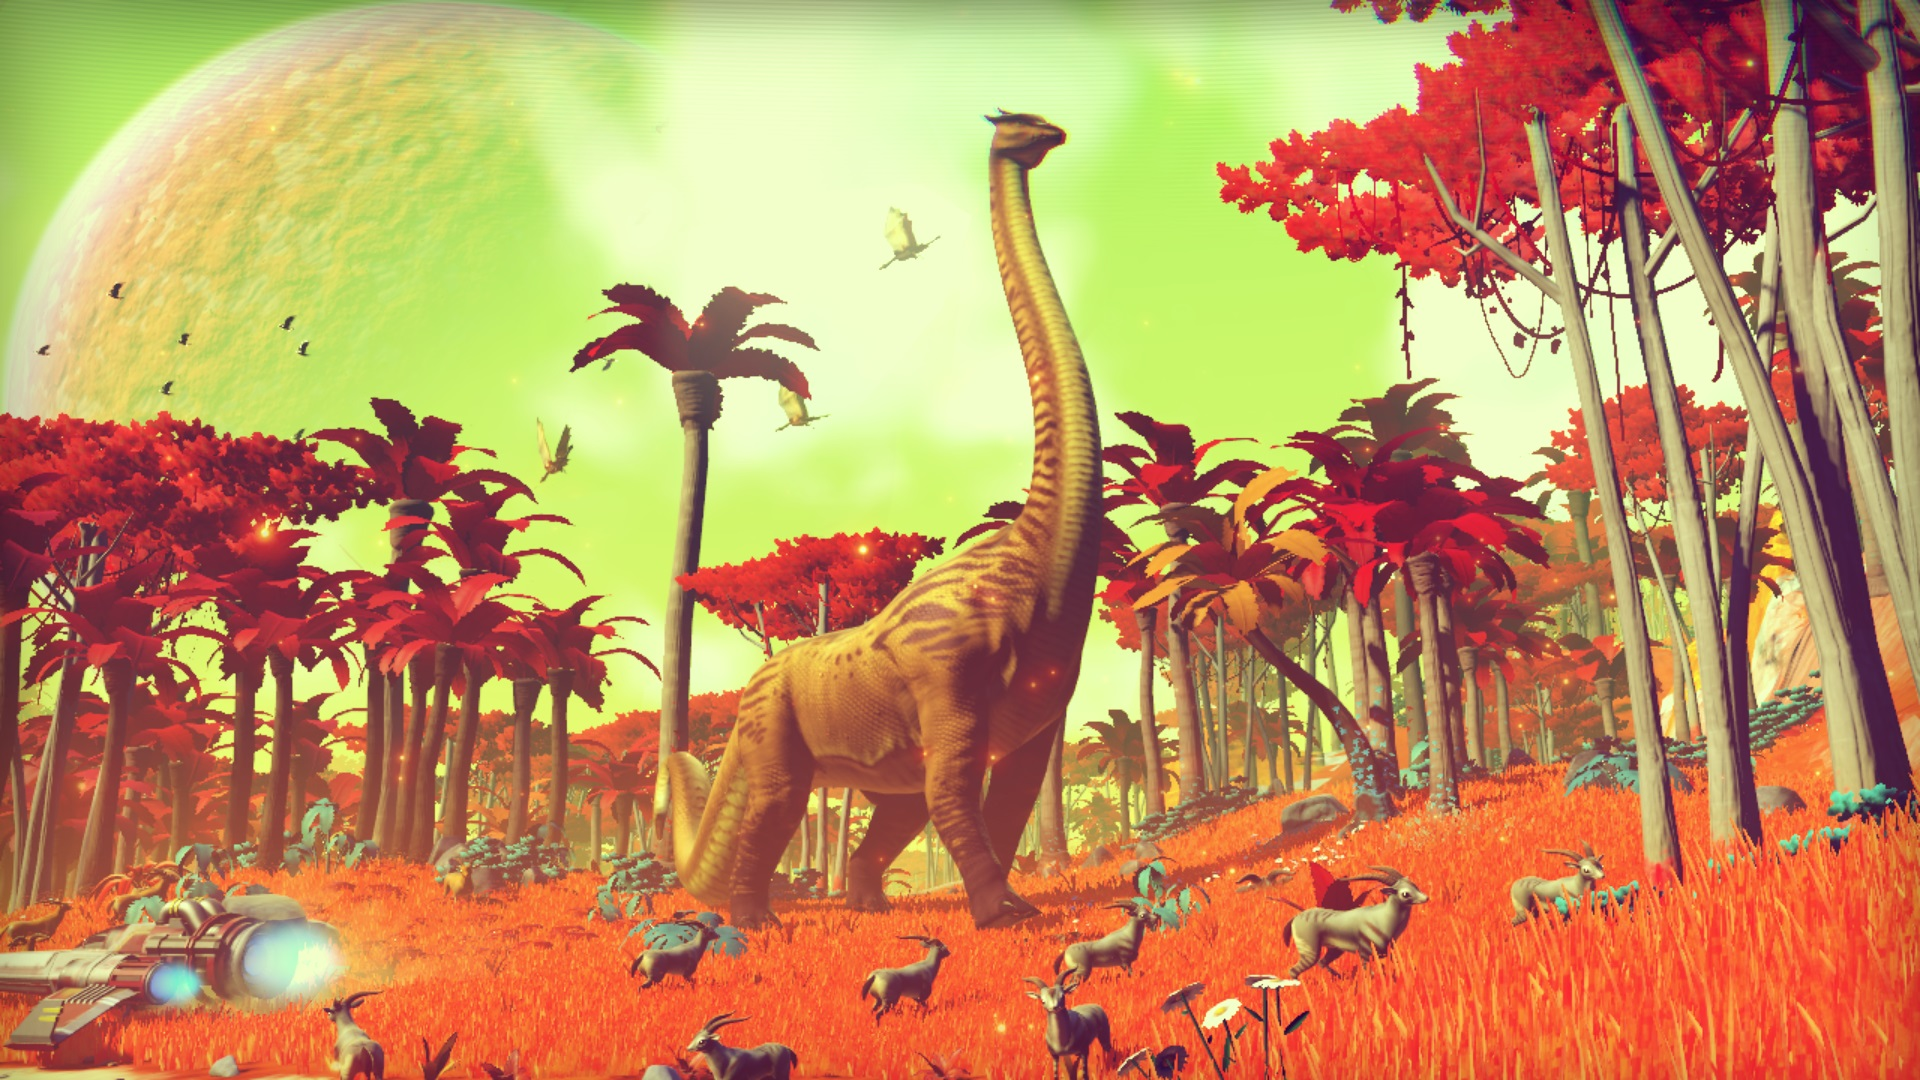 One of the earliest shots of <em>No Man's Sky</em>, from the game's first trailer, shows the promise of the game's procedural generation.